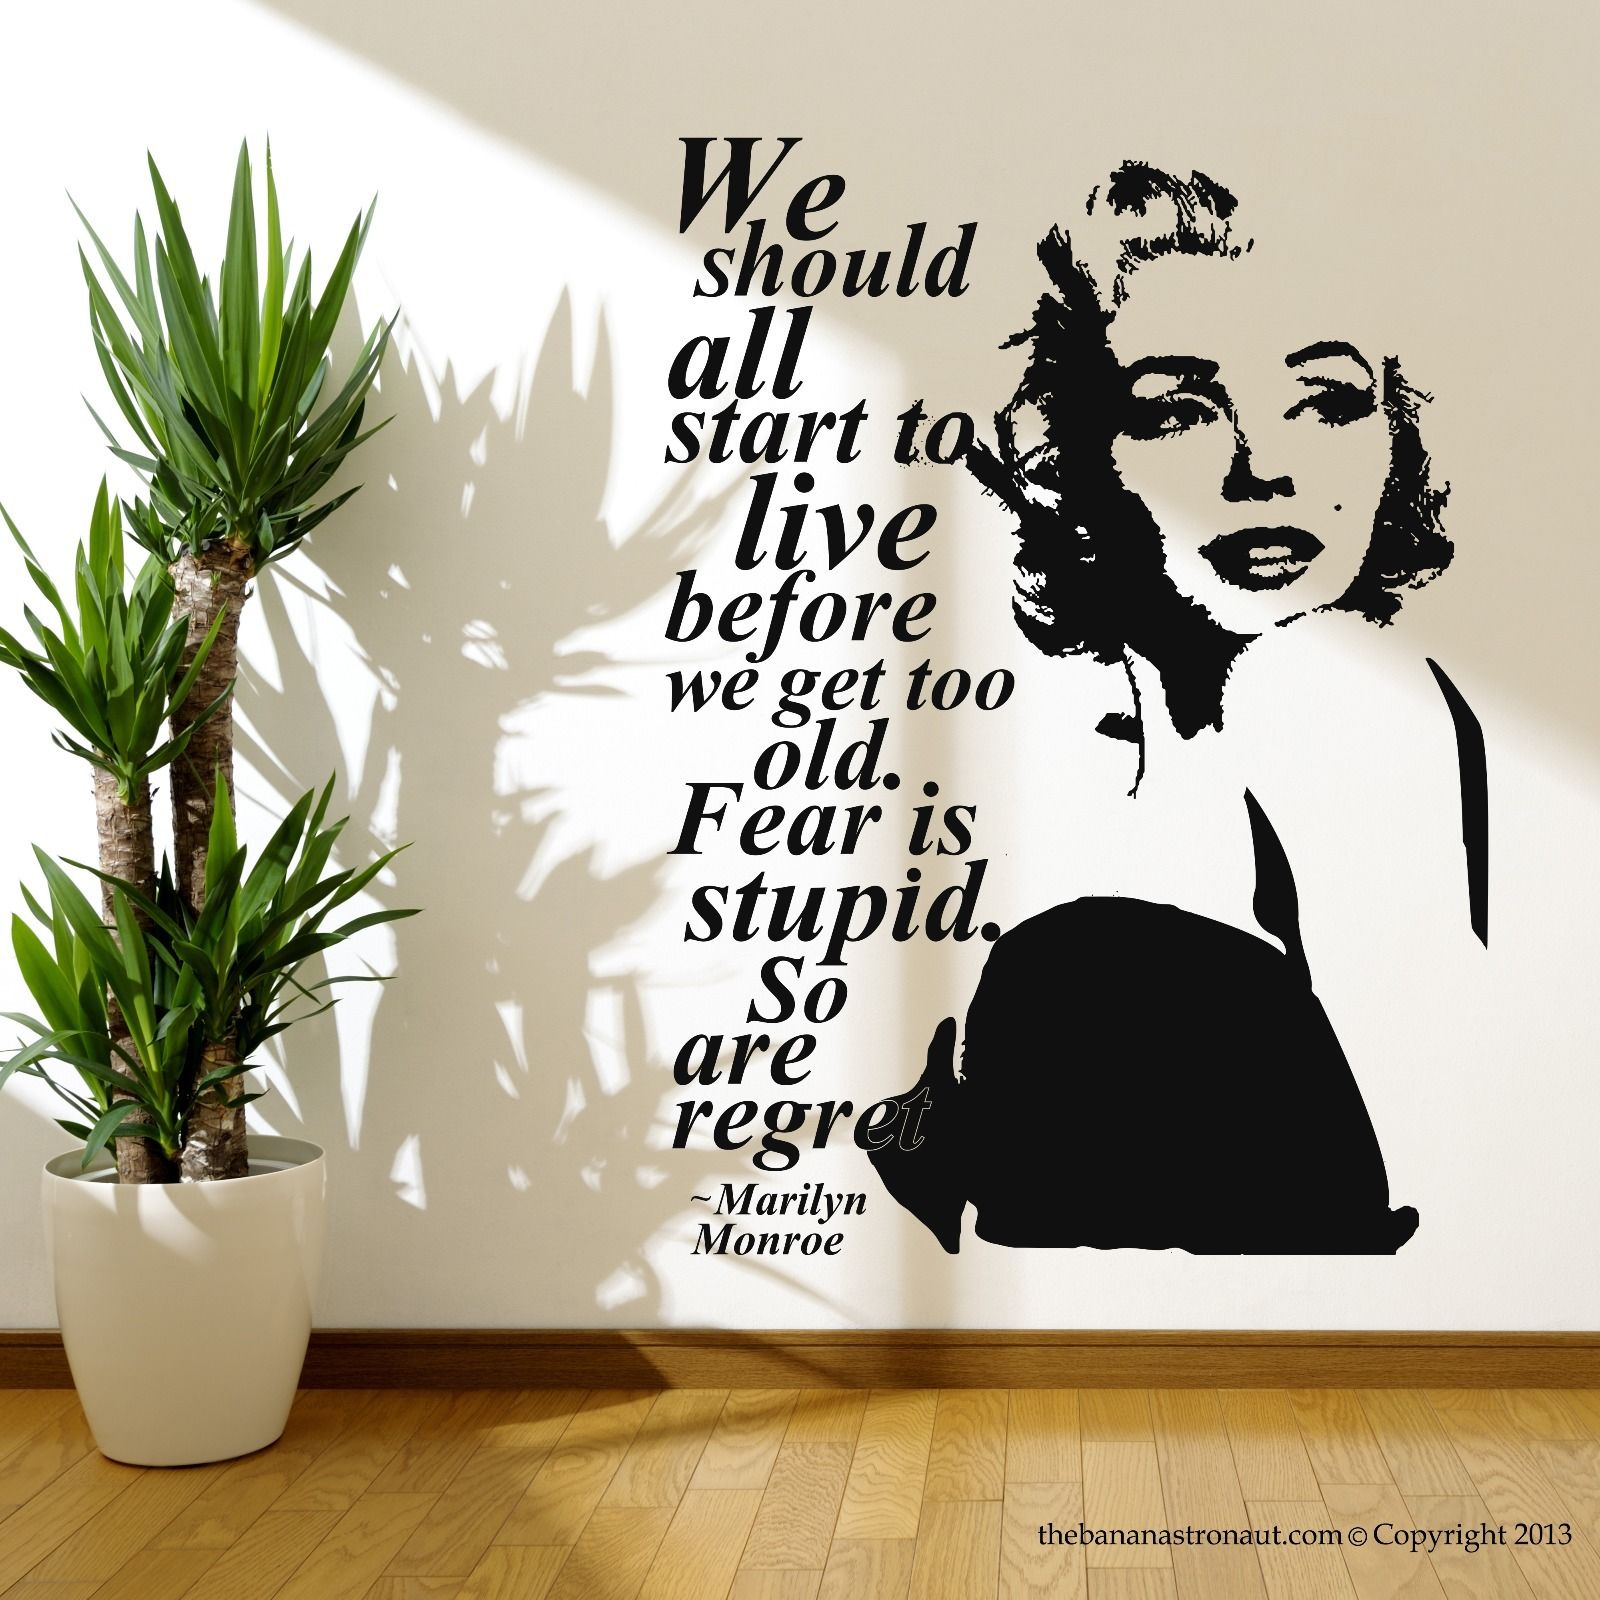 online buy wholesale quotes marilyn from china quotes marilyn